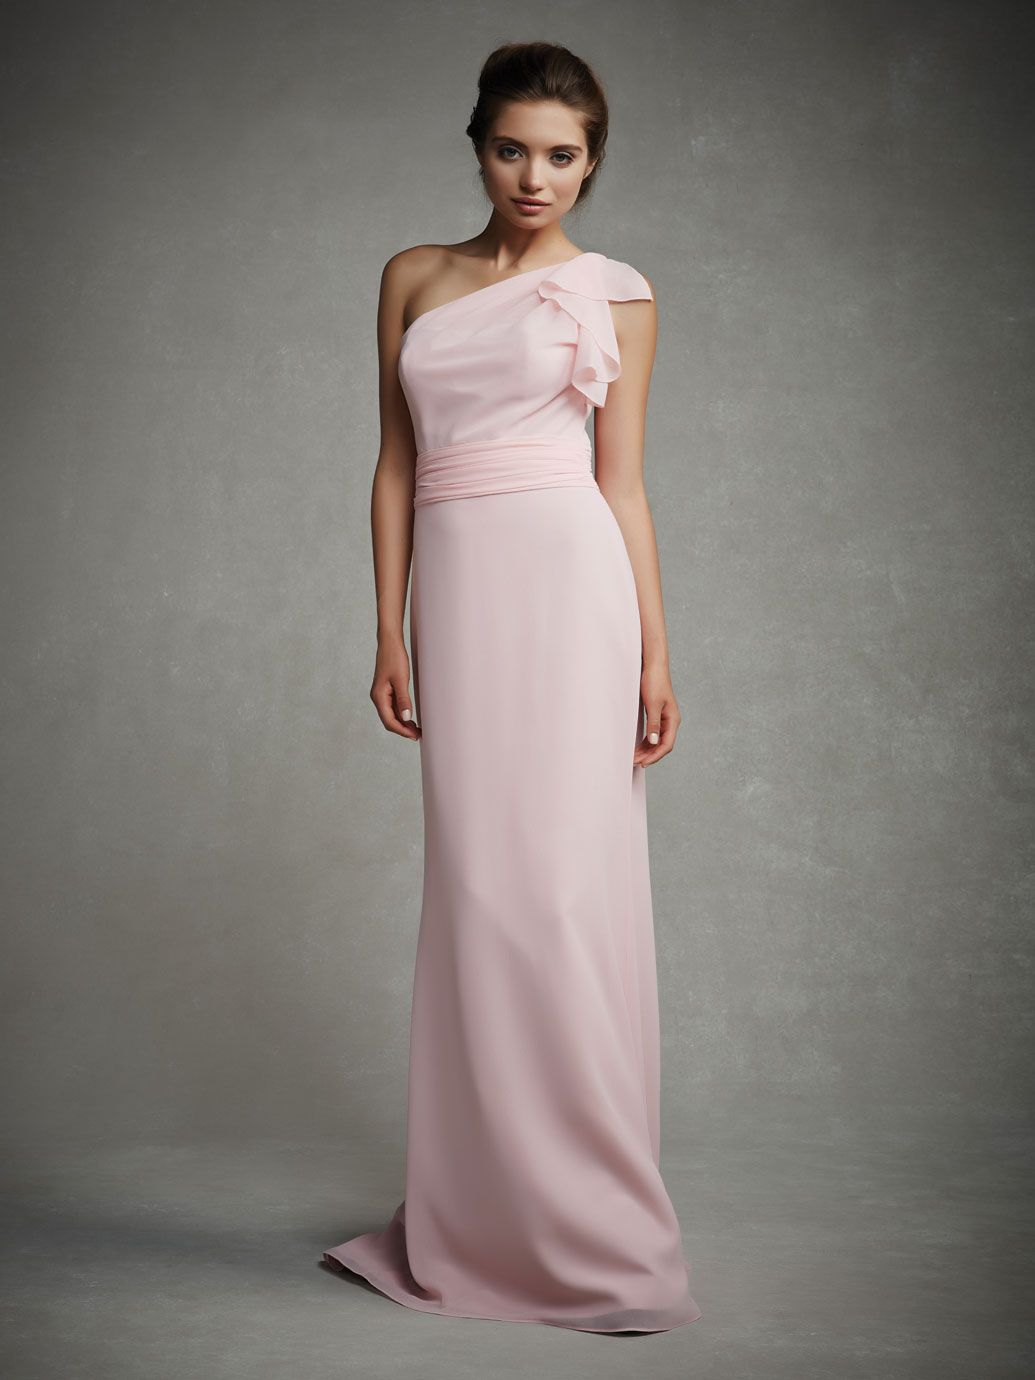 G14 love by enzoani bridesmaid gowns pinterest couture g14 love by enzoani bridal wedding dressesbridesmaid ombrellifo Choice Image